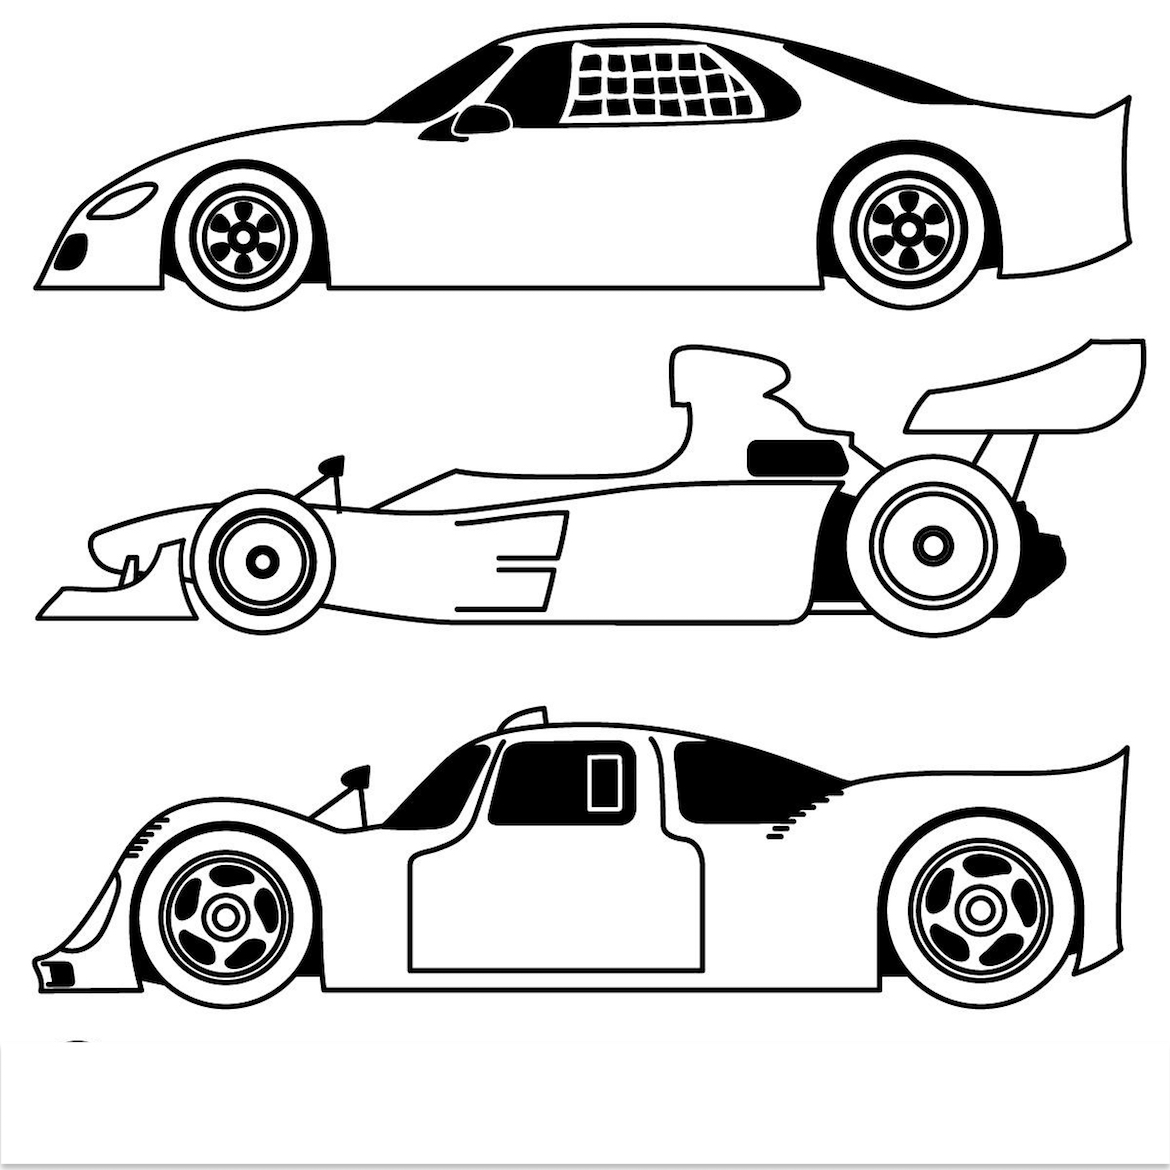 colouring cars color in your favorit cars coloring page with some bright cars colouring